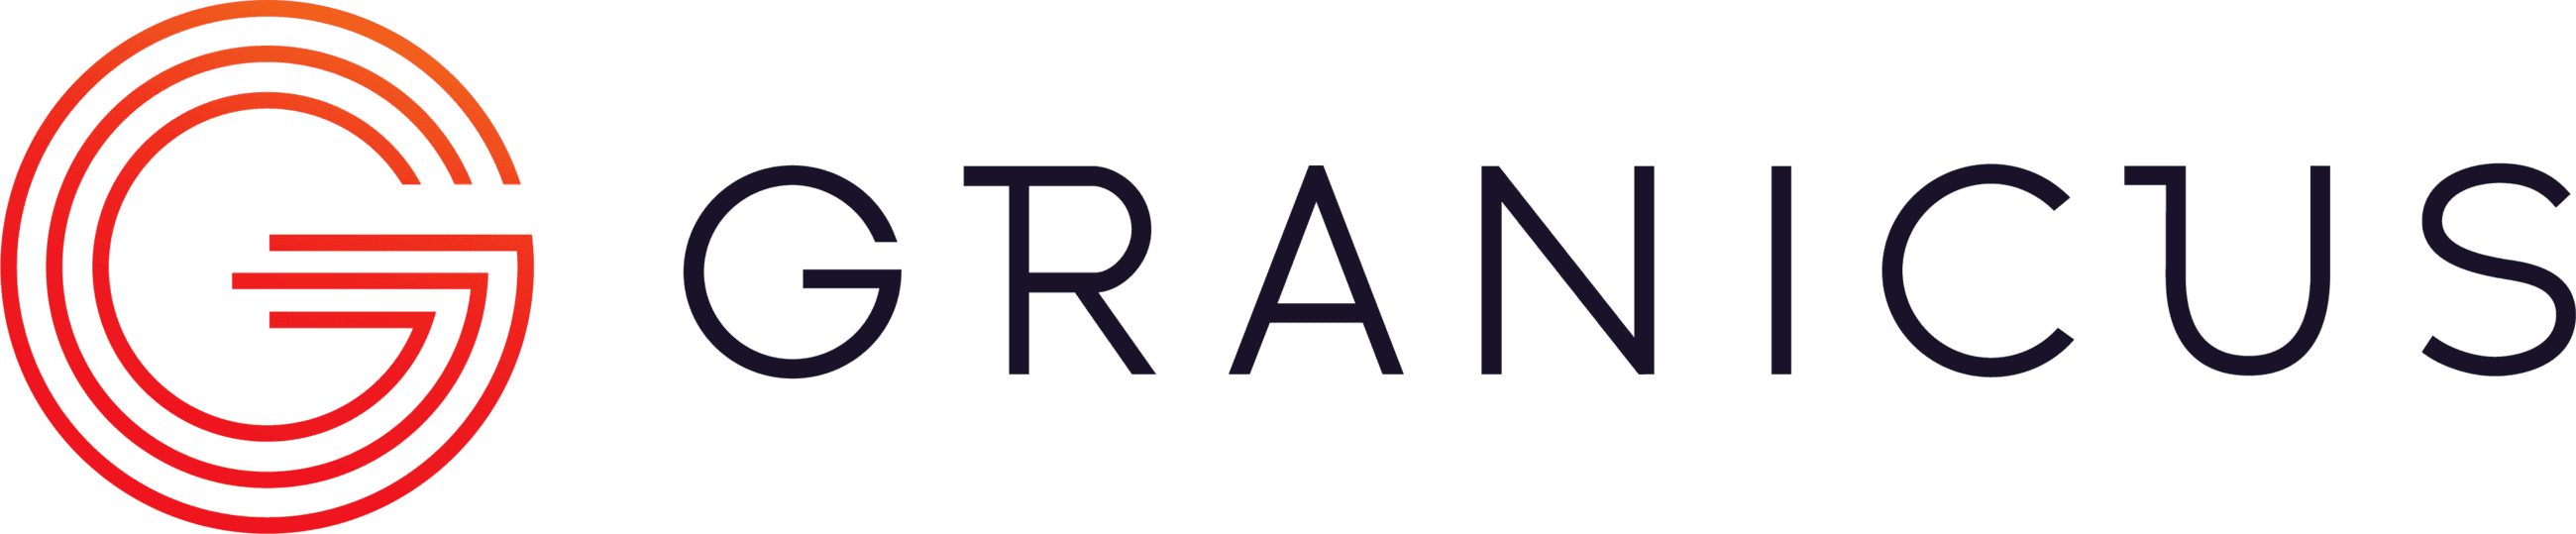 Granicus - Welcome Event Sponsor Opens in new window